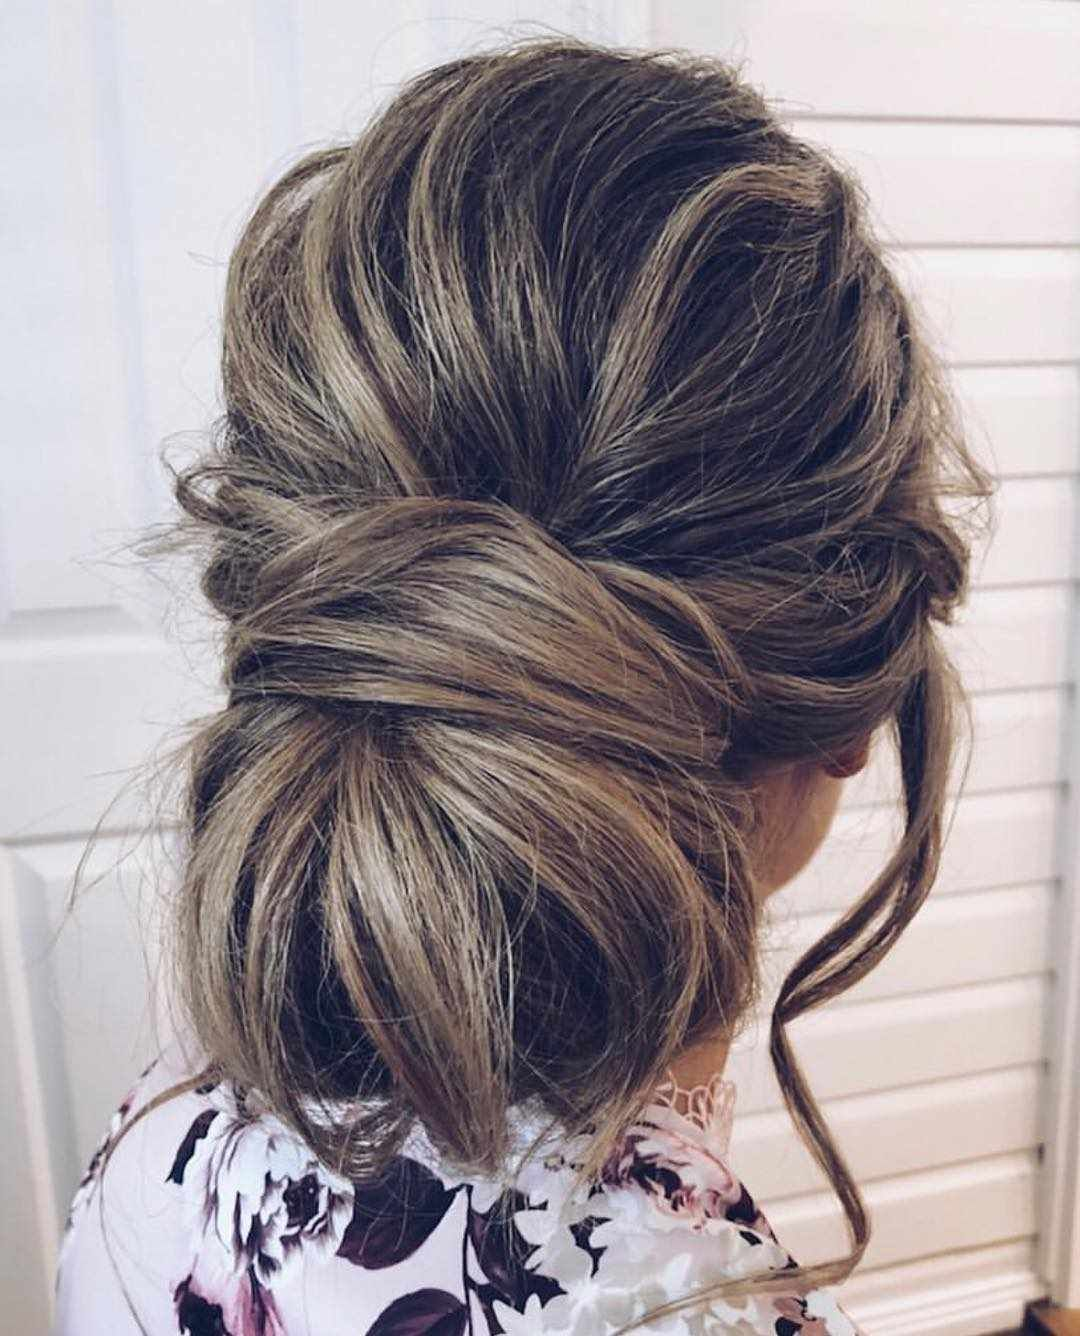 13+ Prom hairstyles for short straight hair inspirations